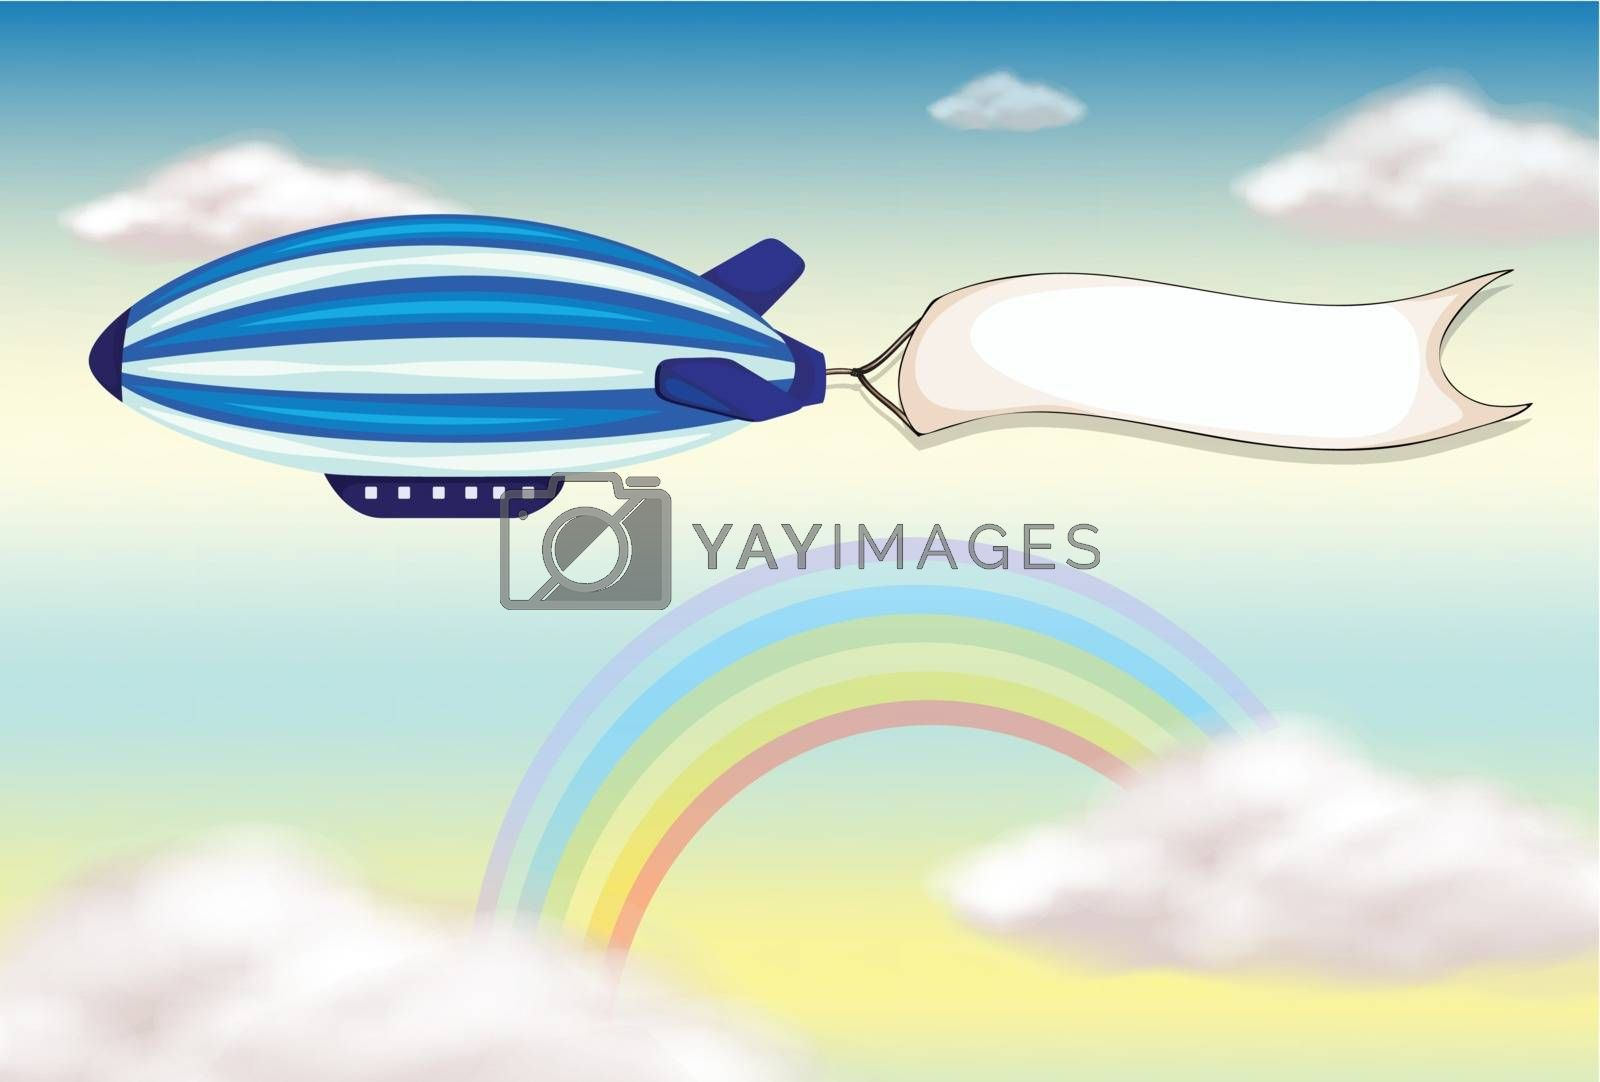 Illustration of a stripe blimp with an empty banner